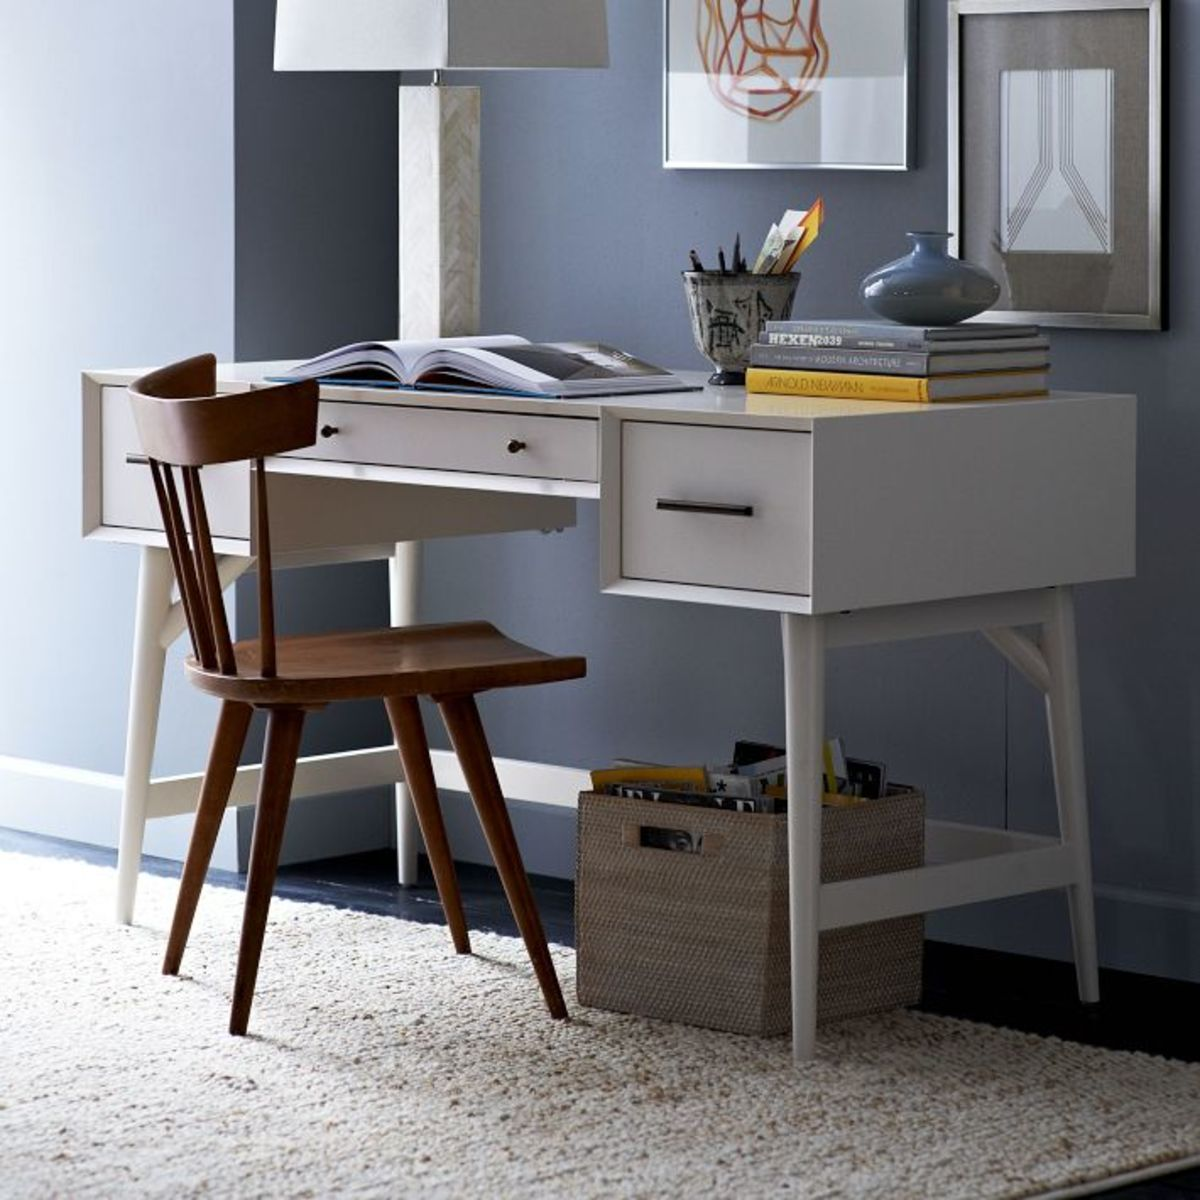 The 12 Coolest Desks For Your Home Office Airows